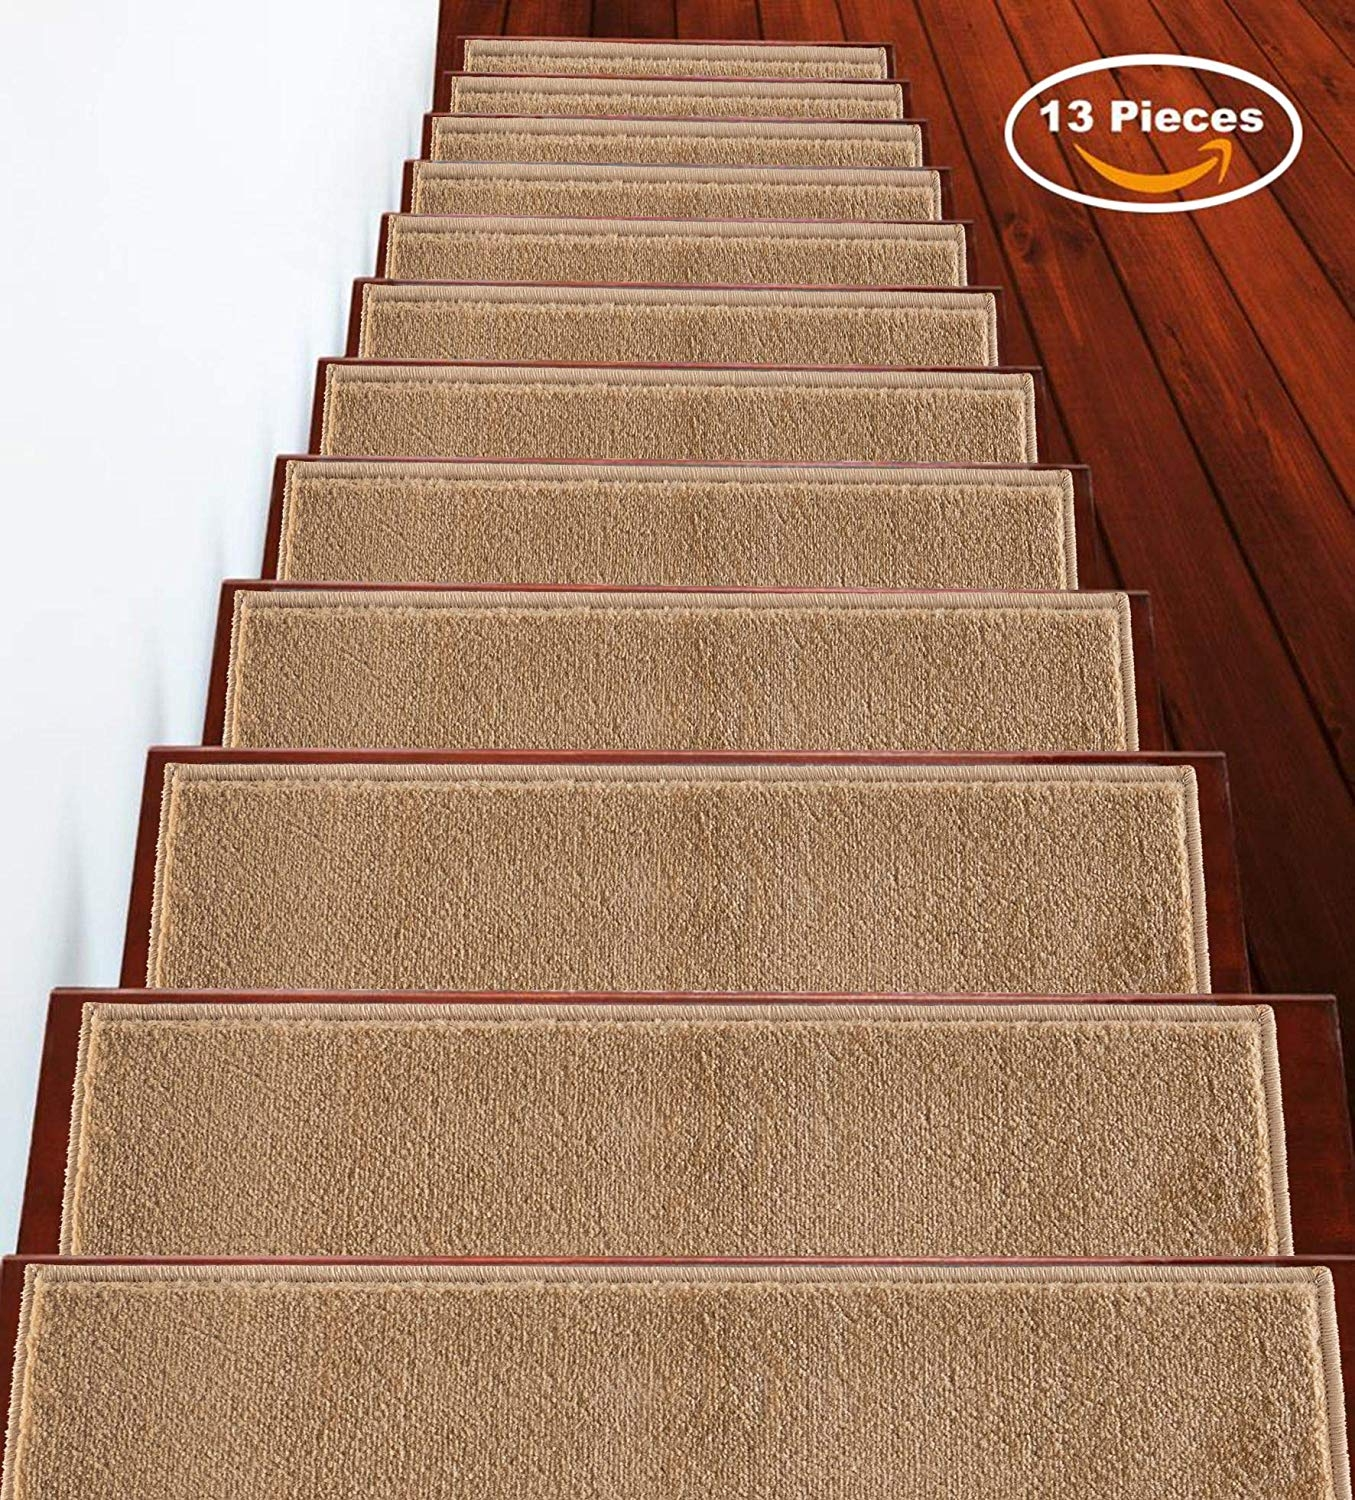 Sussexhome Stair Runner Carpet Beige Carpet 9 X 28 7 Set   Carpet On Stairs Only   Concept   Line Carpet Staircase Double   Pinstripe Grey   Grey   Wood